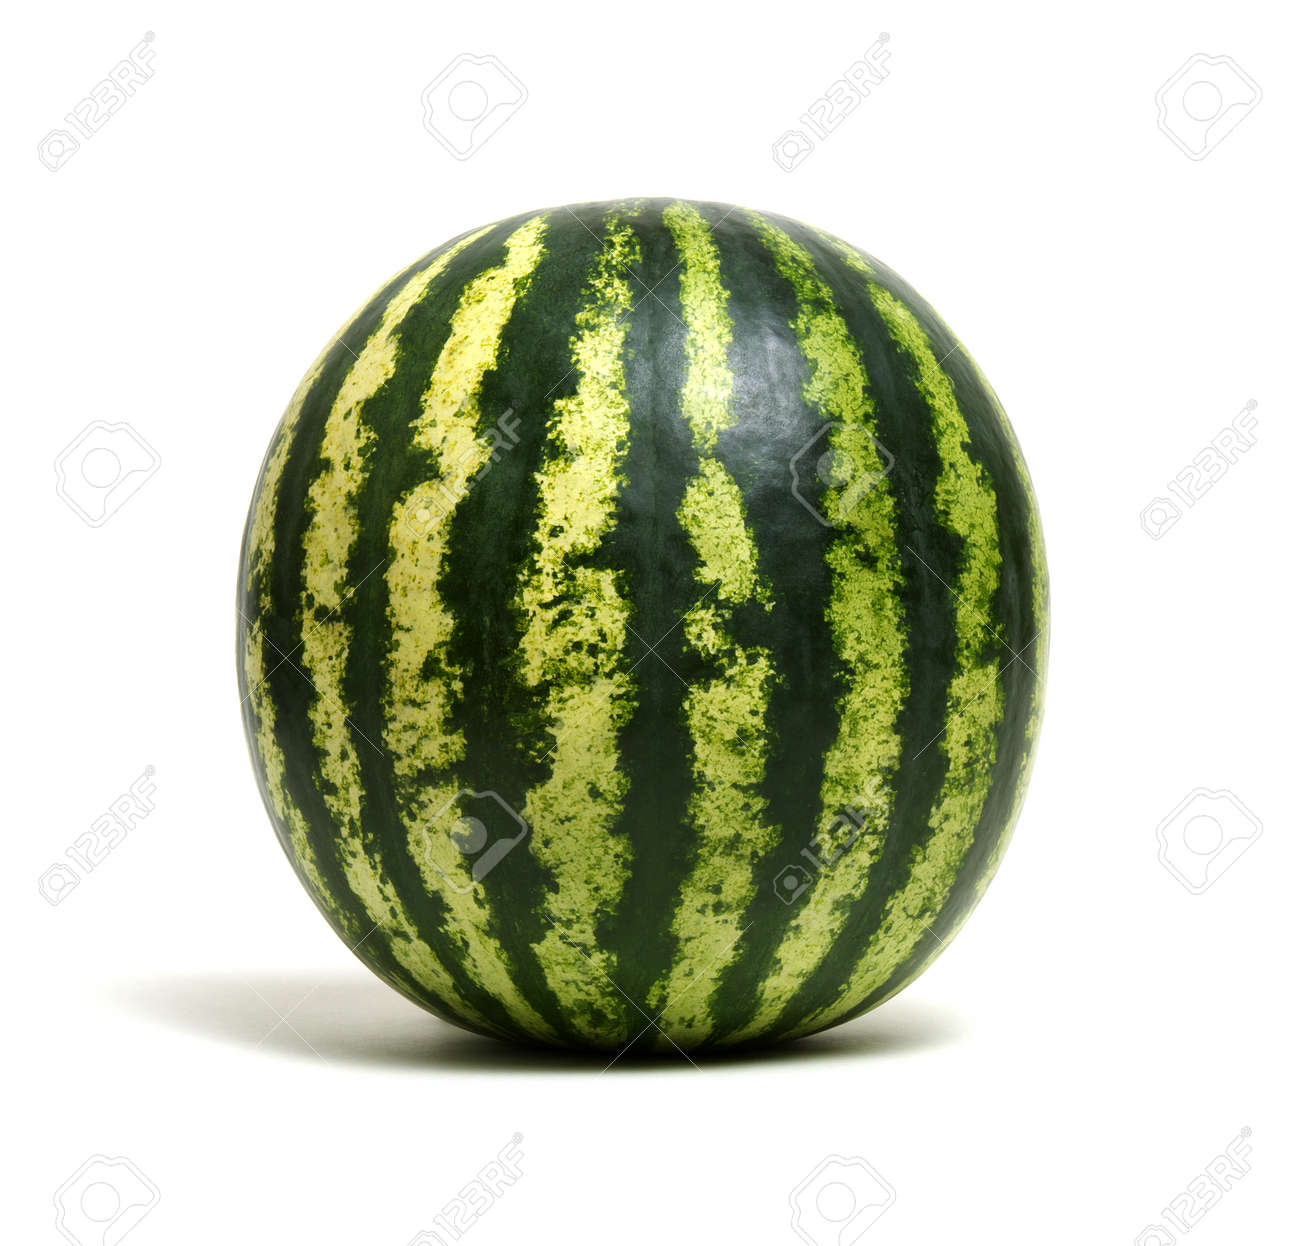 Ripe striped watermelon isolated on white - 100473747